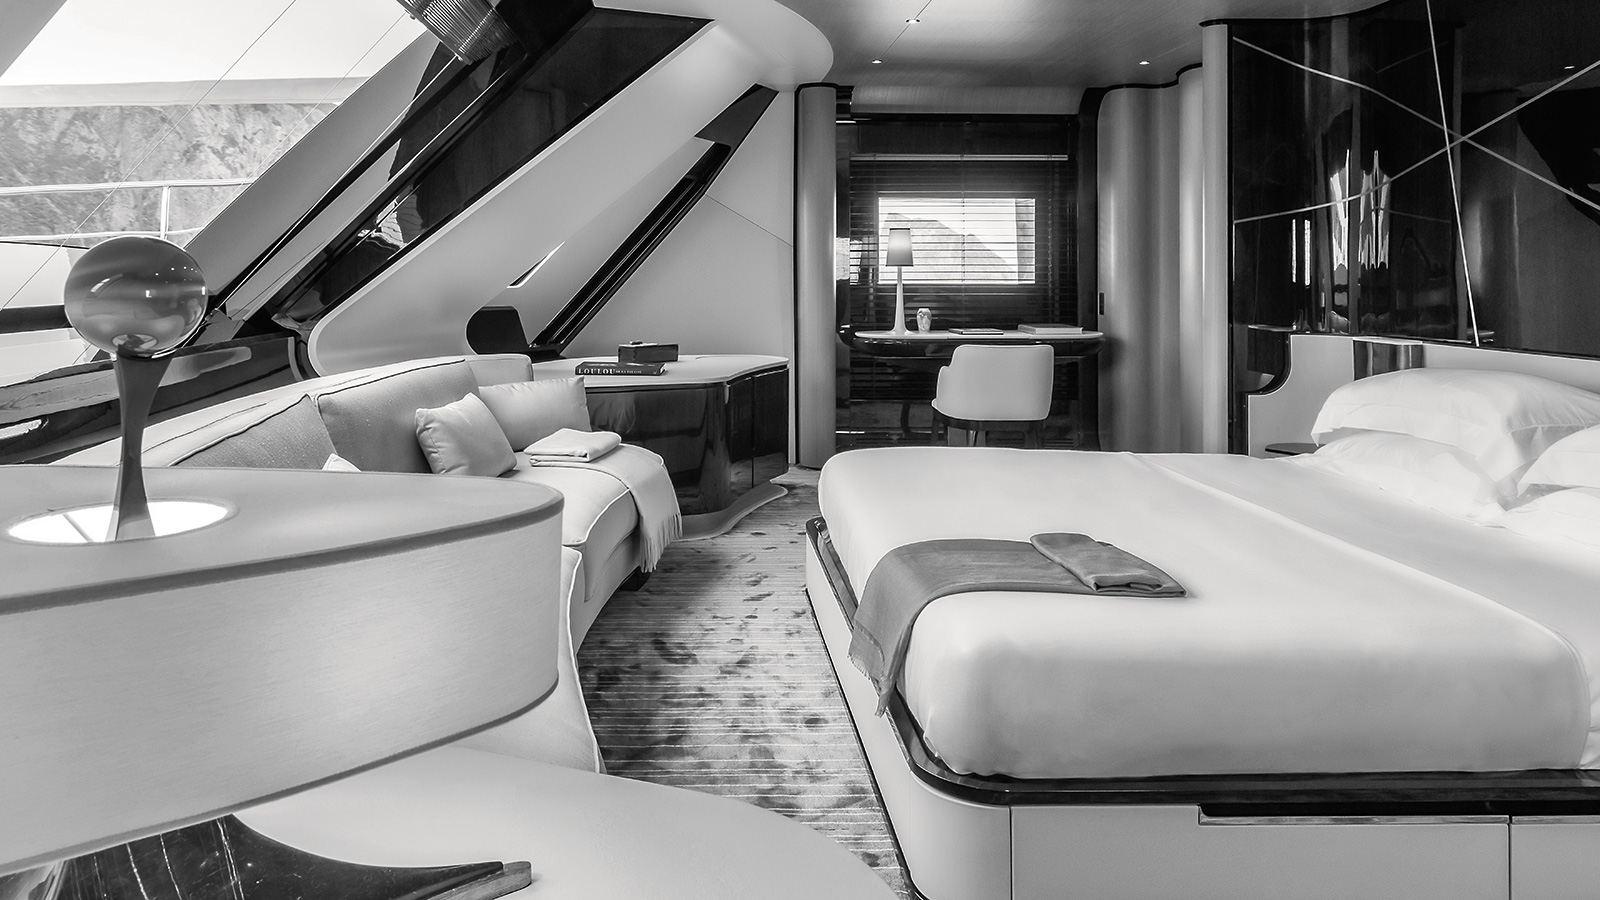 the-forward-master-suite-of-the-rossinavi-superyacht-aurora-credit-Paolo-Petrignani